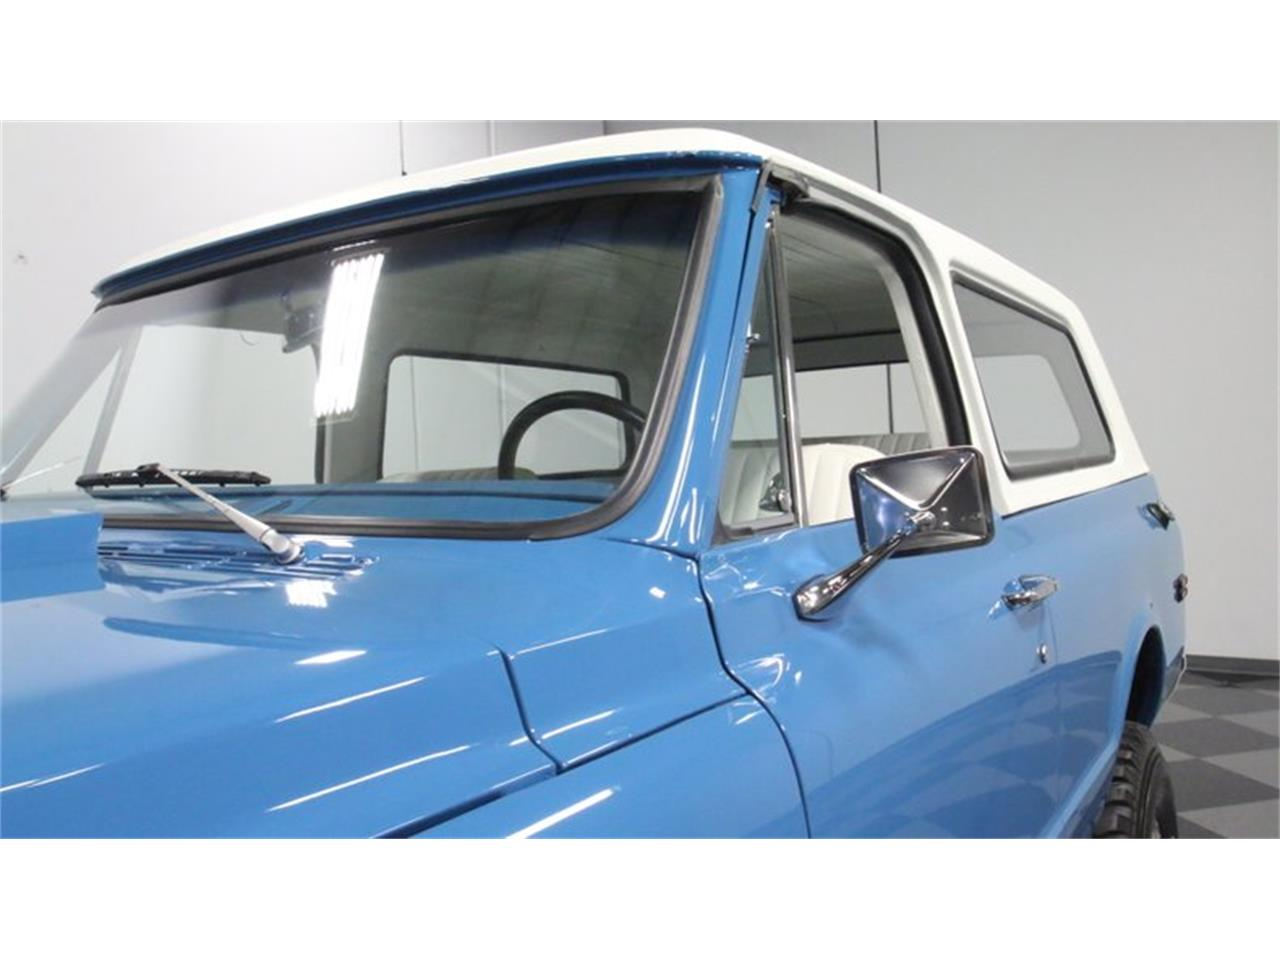 Large Picture of 1971 Chevrolet Blazer - $52,995.00 Offered by Streetside Classics - Atlanta - PZLZ